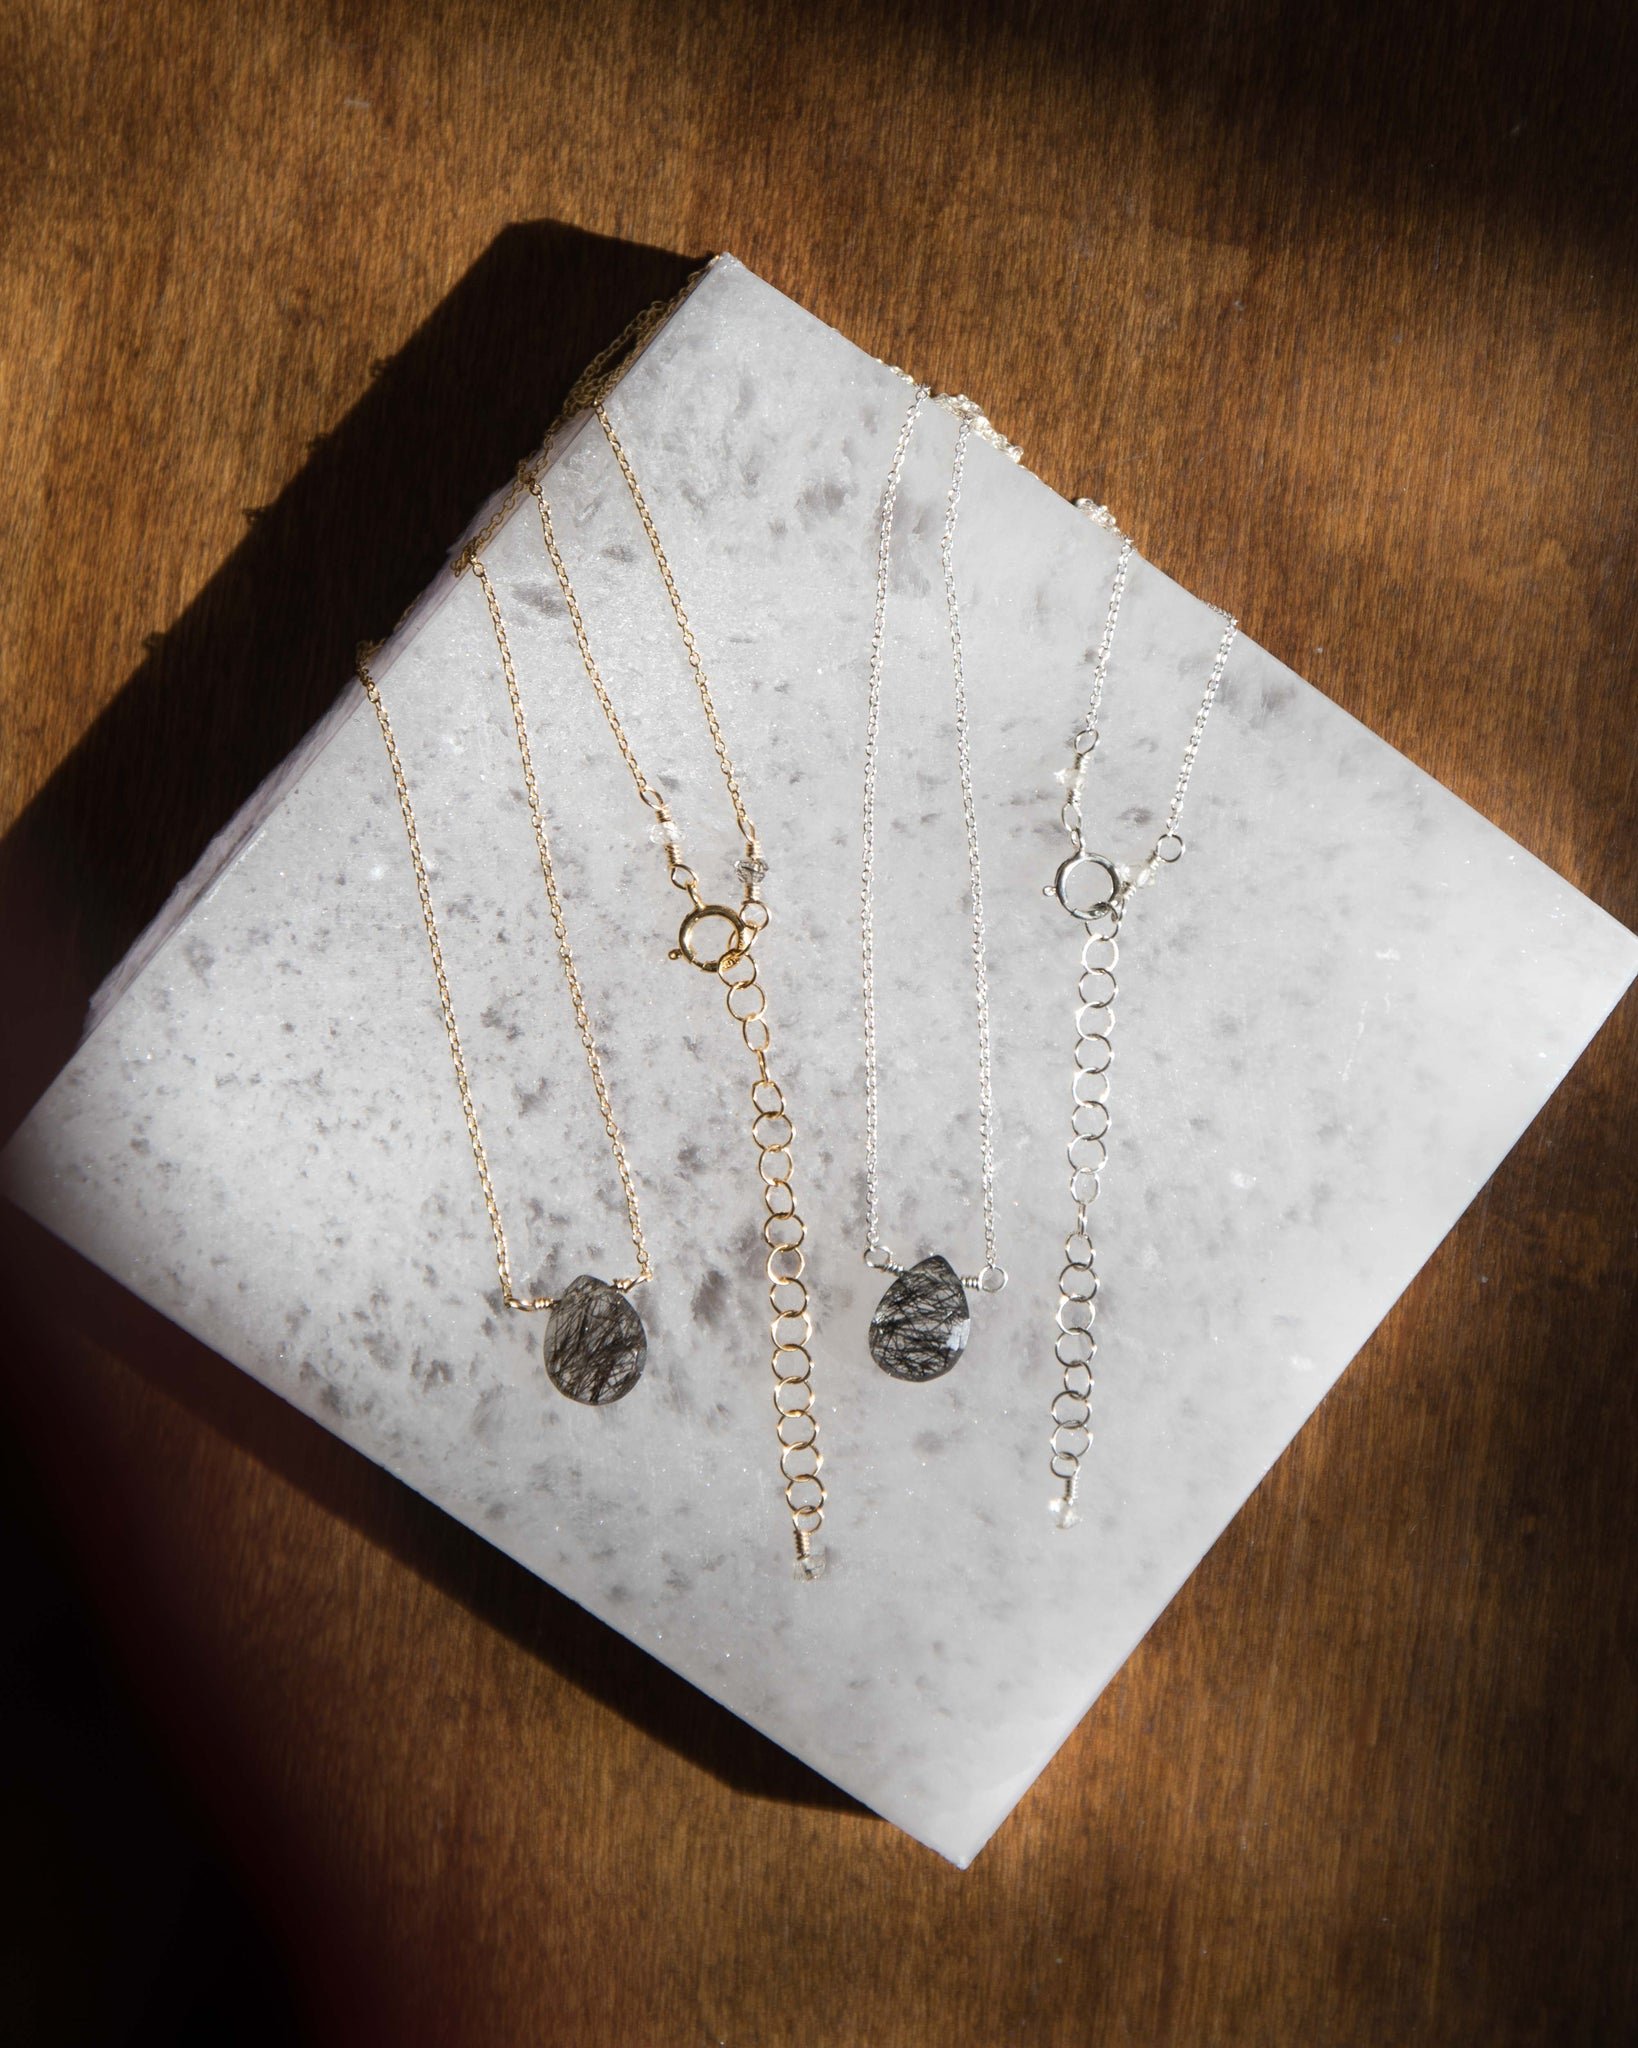 Black Tourmalated Quartz Necklace - PREORDER